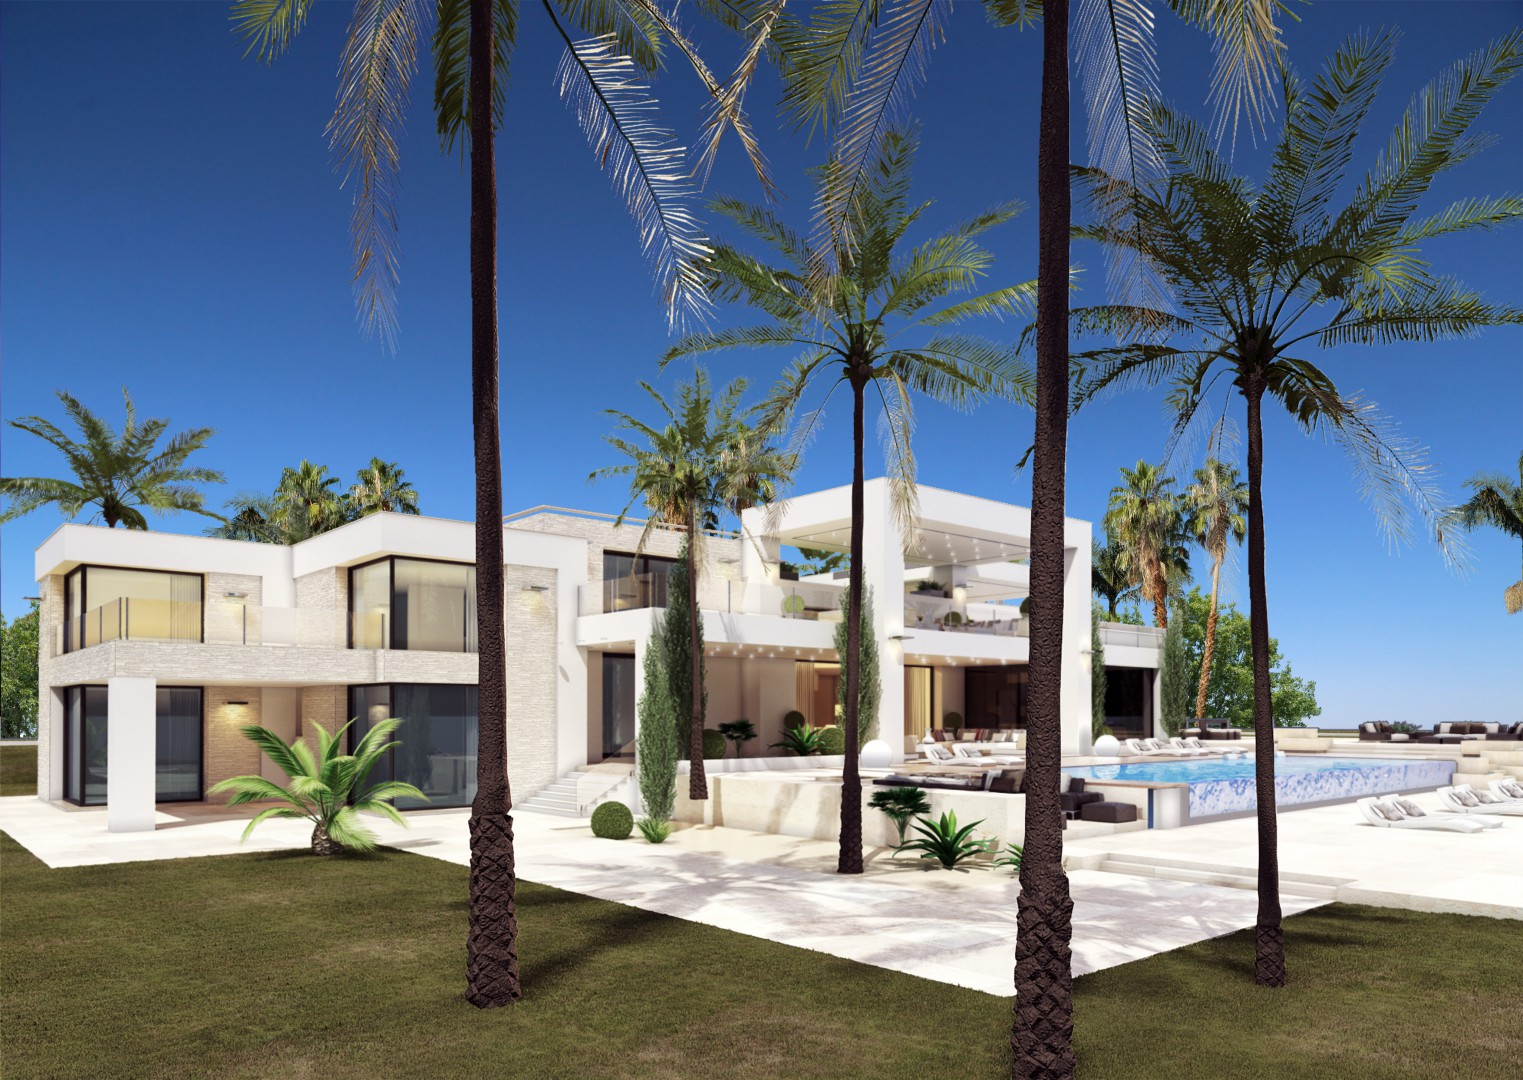 Single Family Home for Sale at A truly jewel of villa at beachfront New Golden Mile Estepona, Costa Del Sol, 29680 Spain